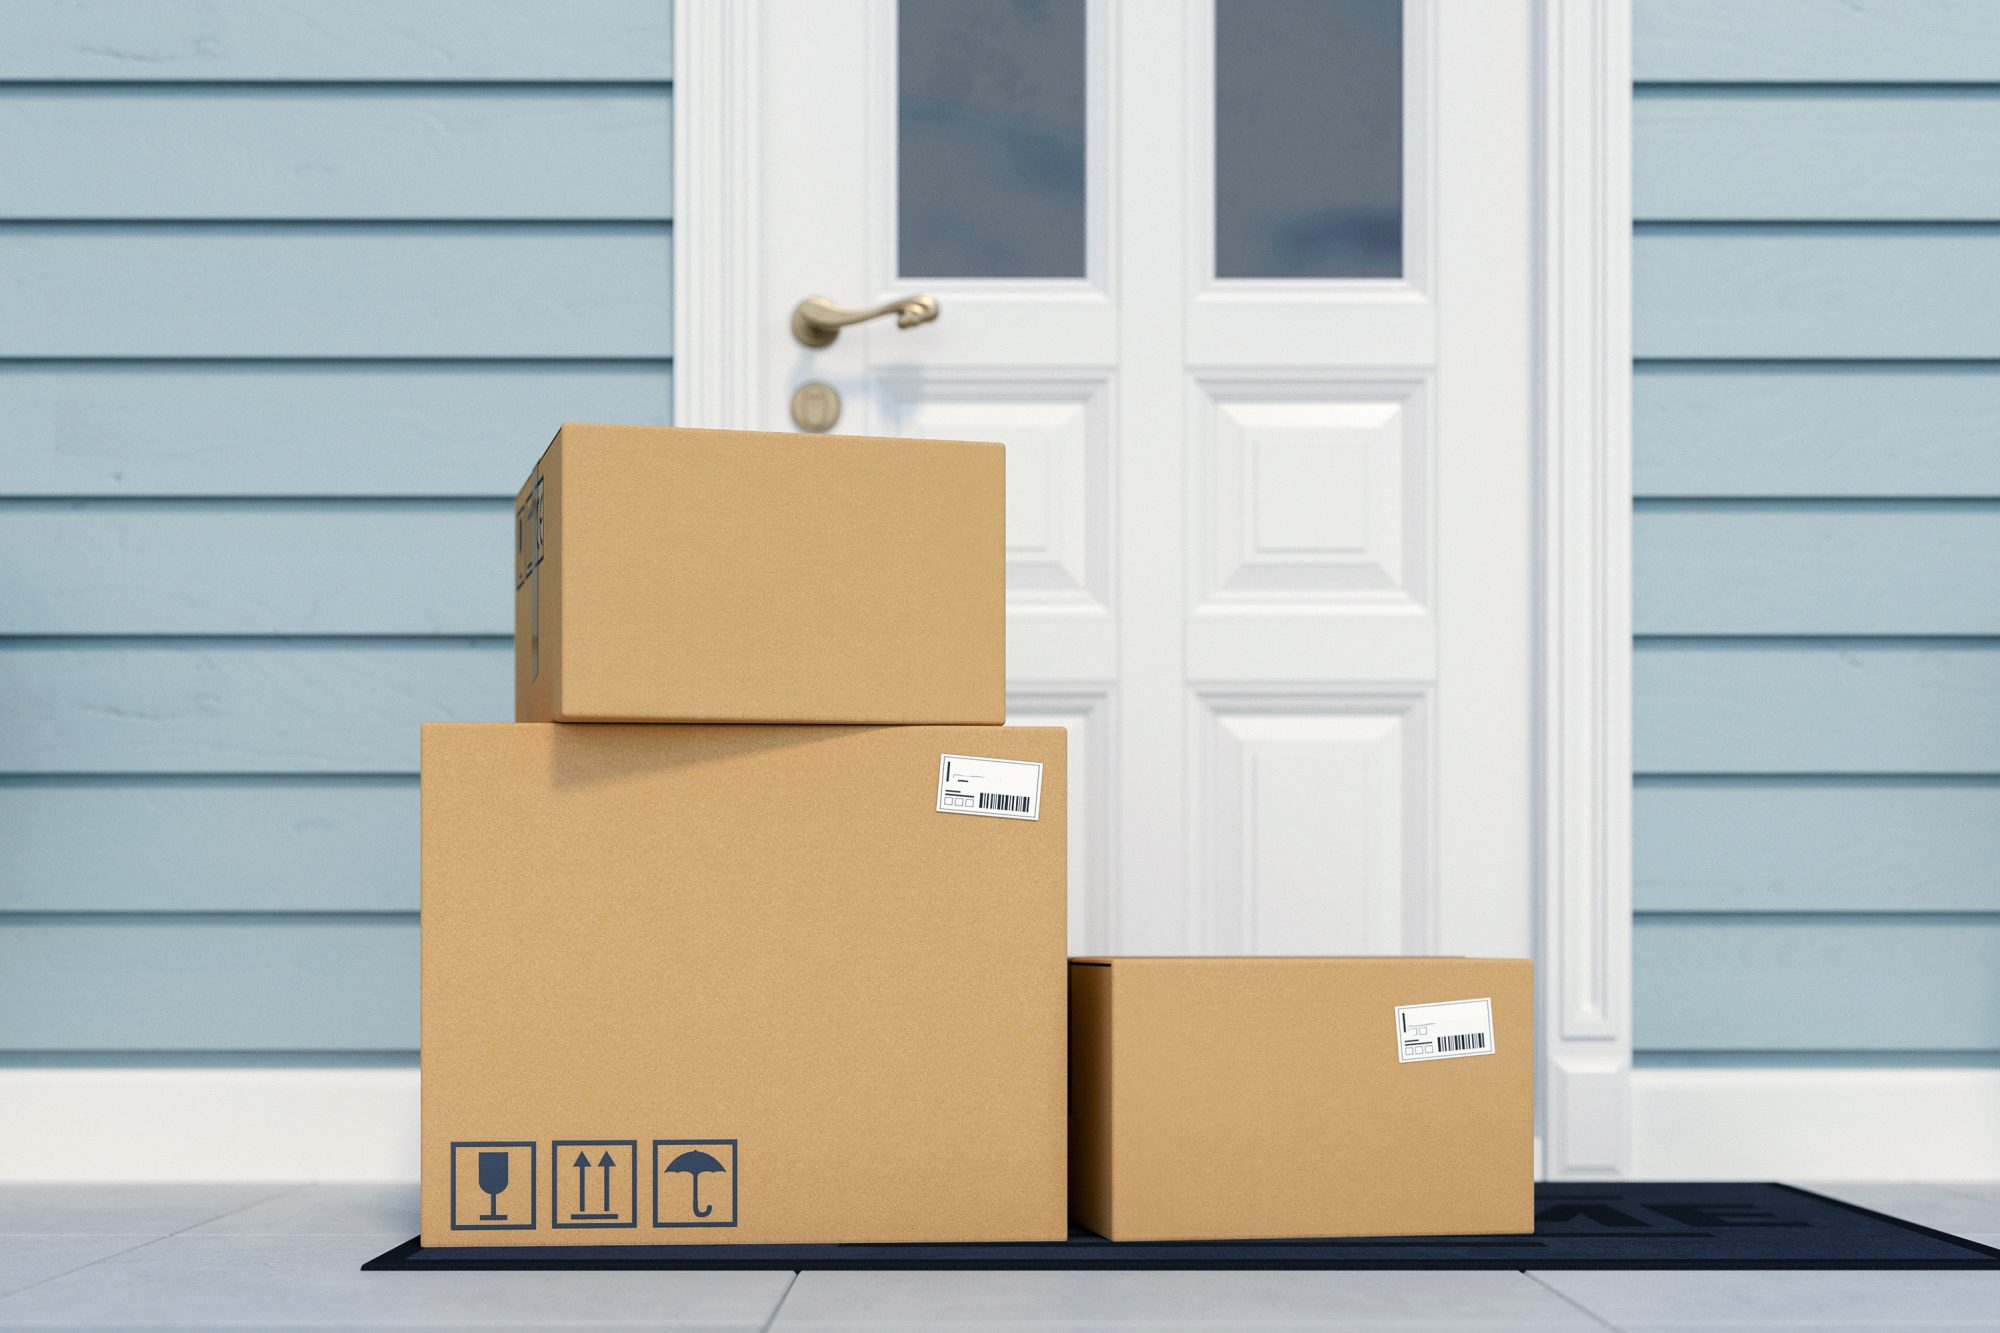 Packages waiting outside a house